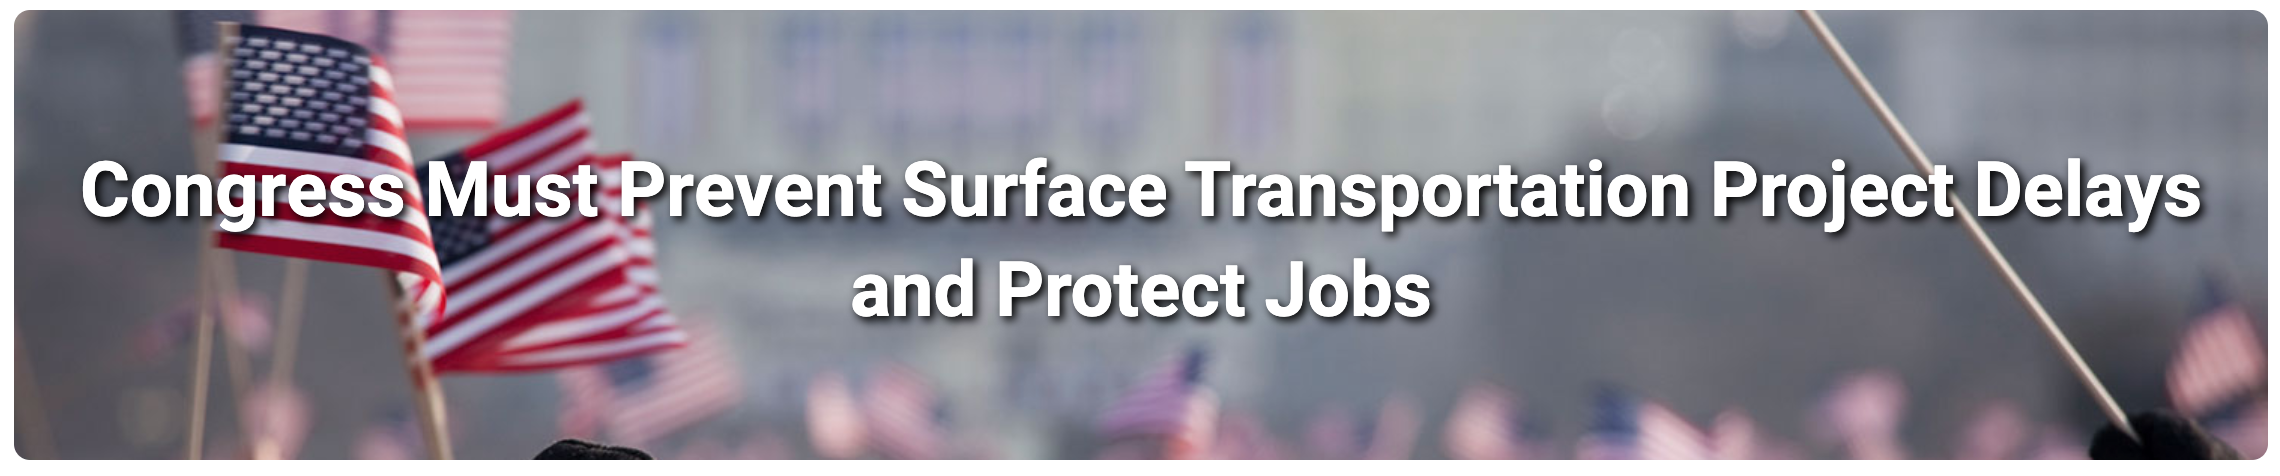 Tell Congress to Prevent Surface Transportation Project Delays and Protect Jobs